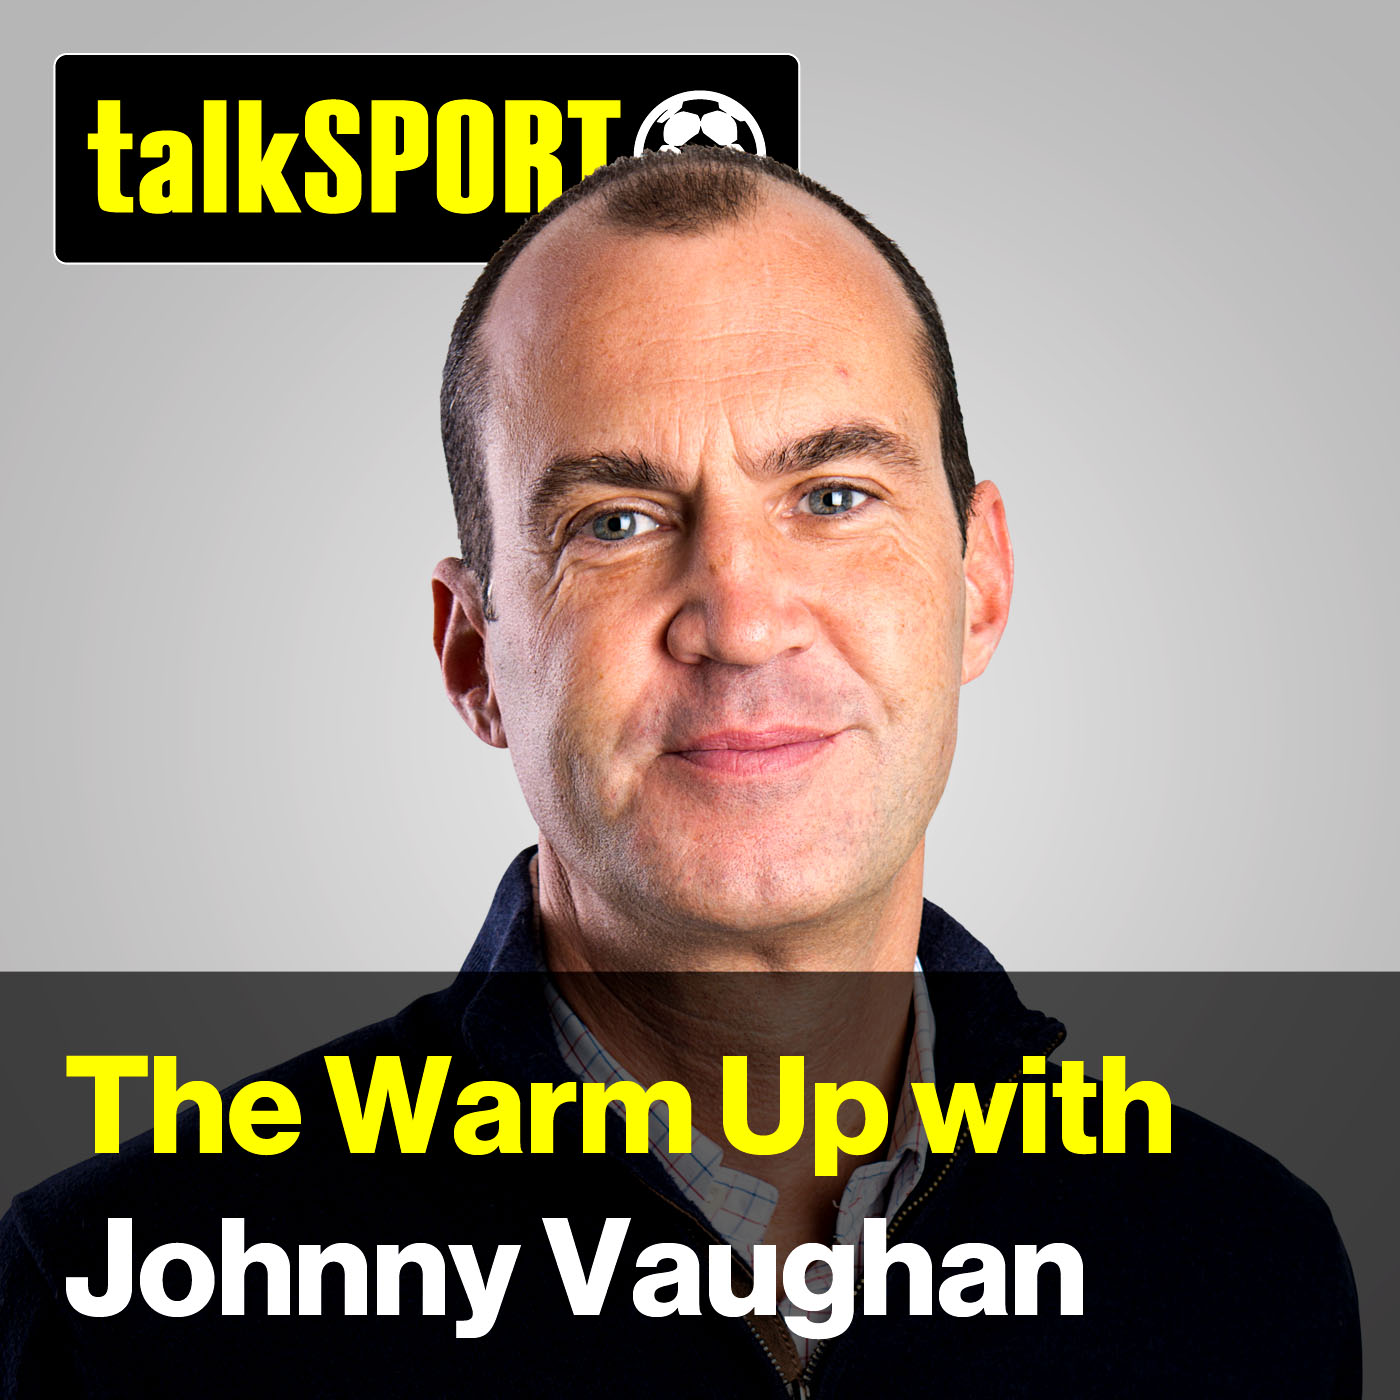 The Warm Up with Johnny Vaughan